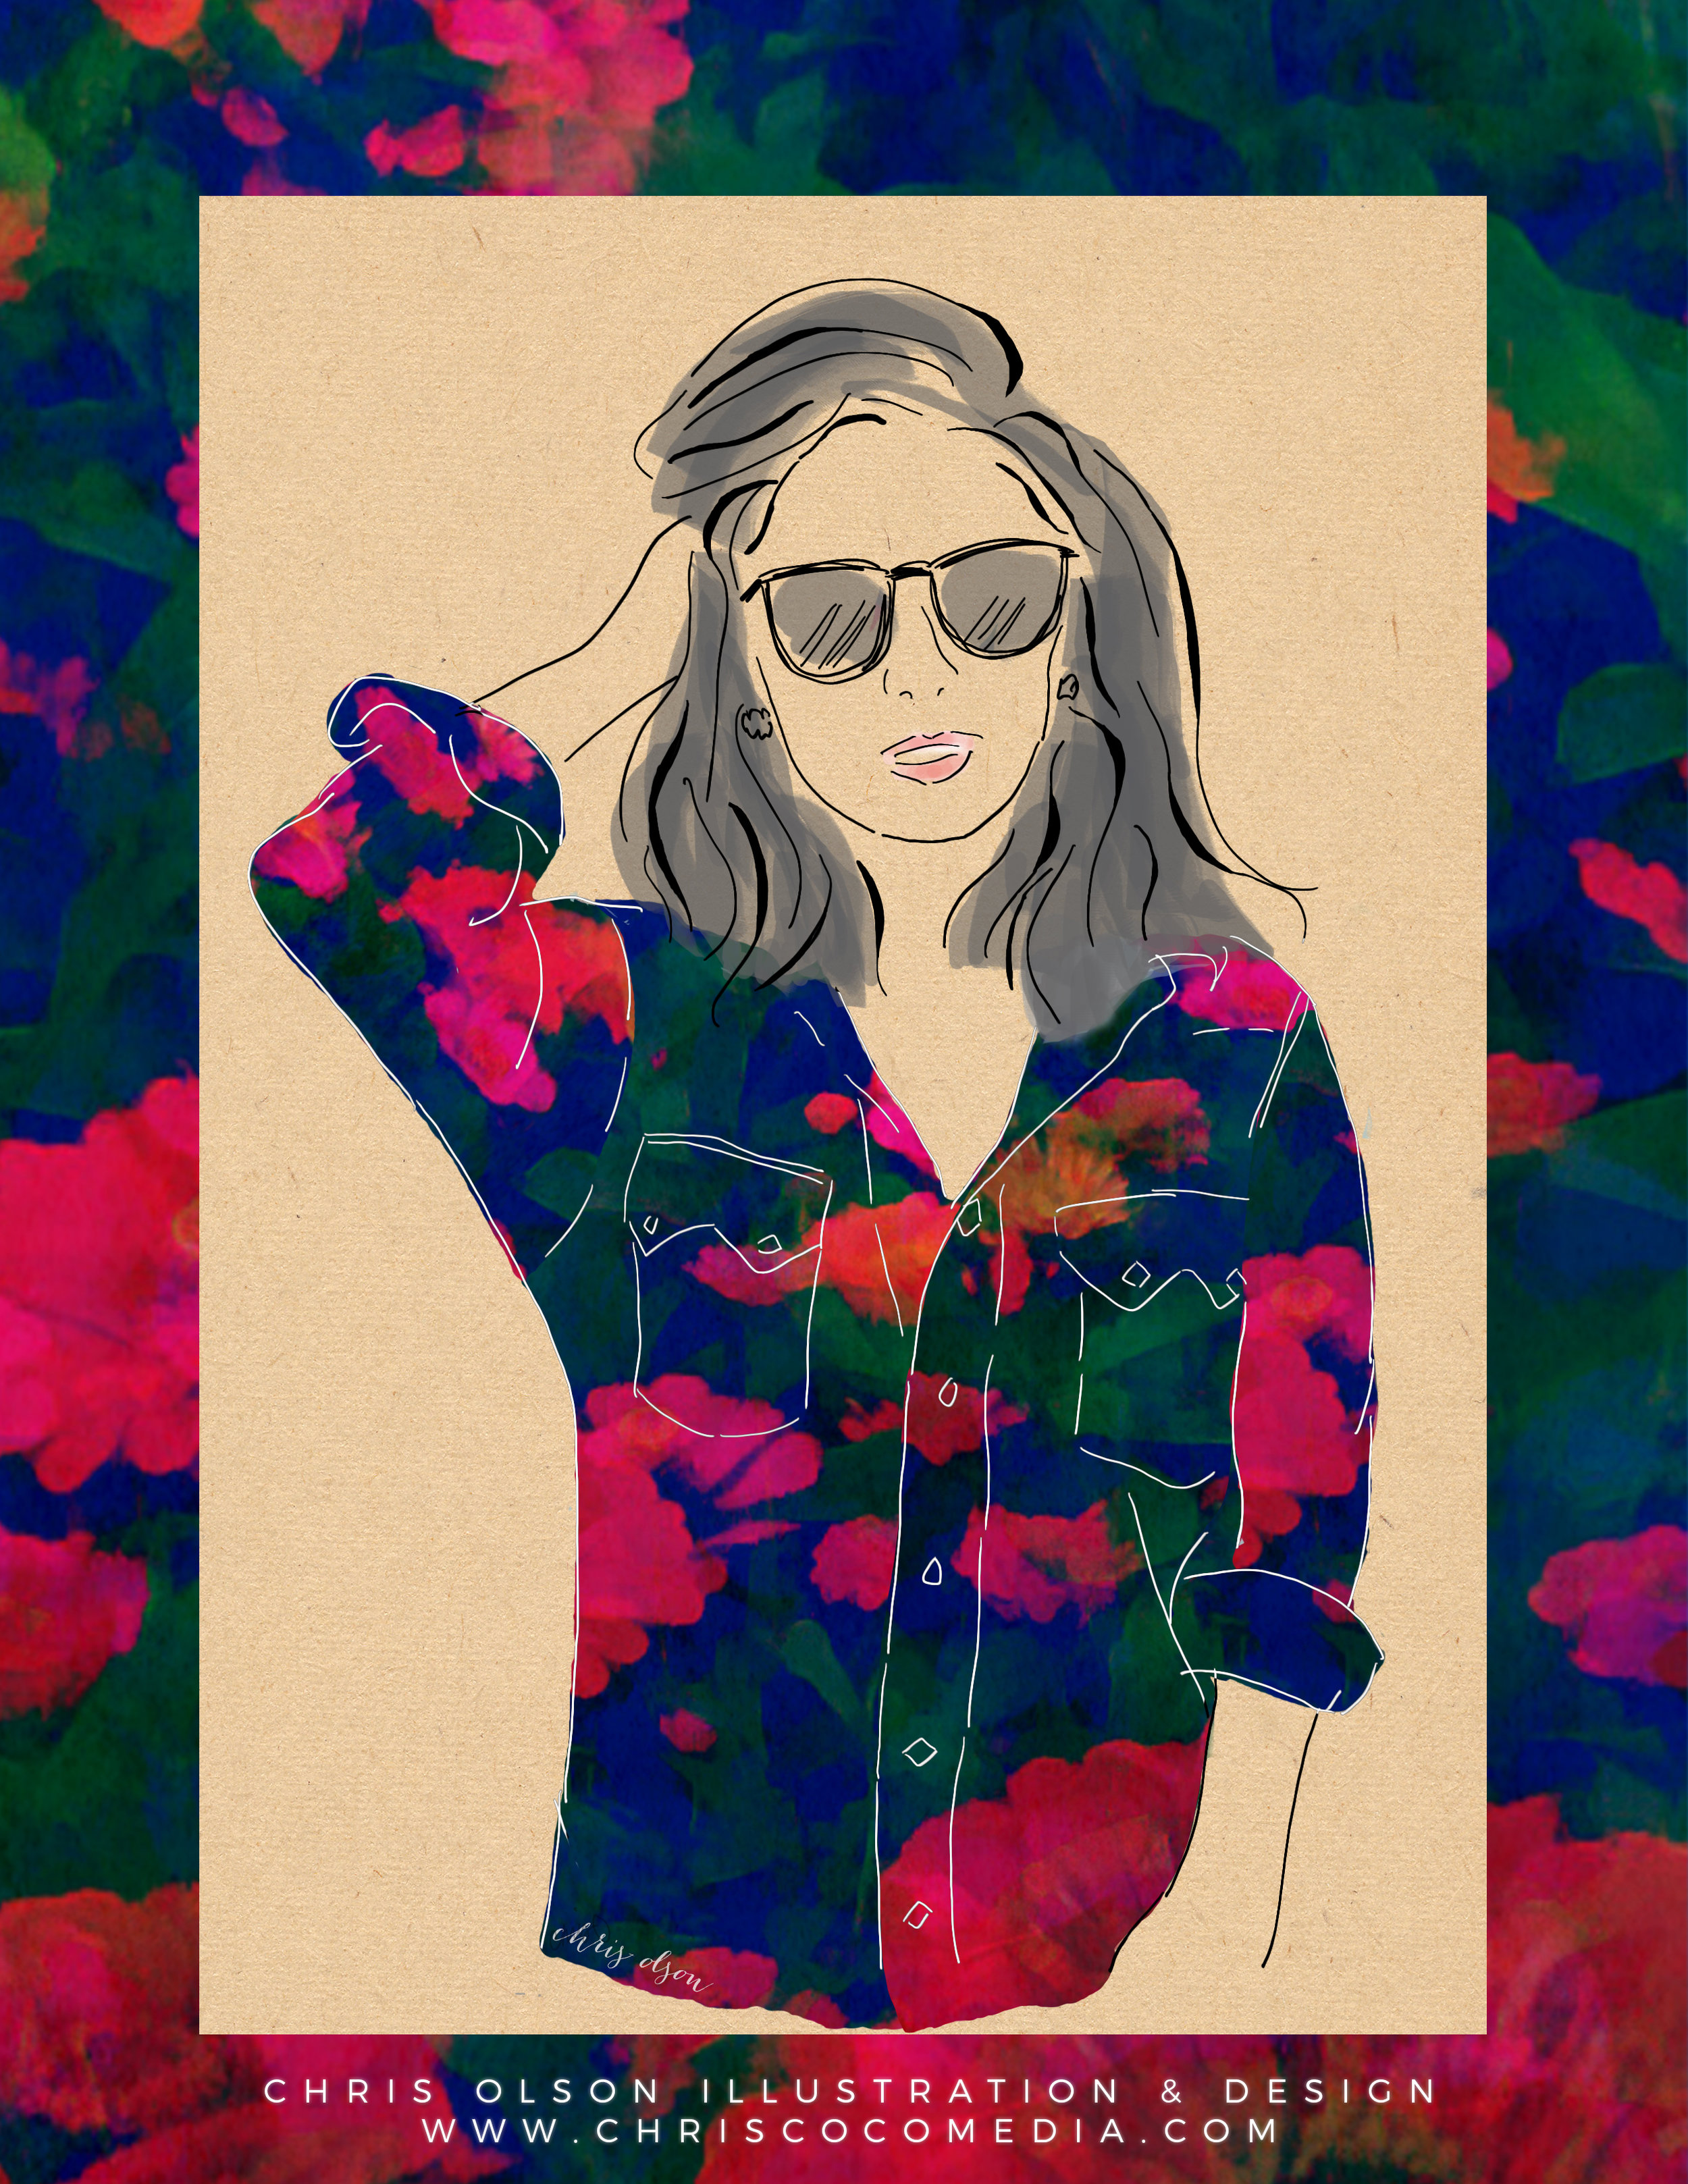 Winter floral textile and fashion illustration by designer Chris Olson.